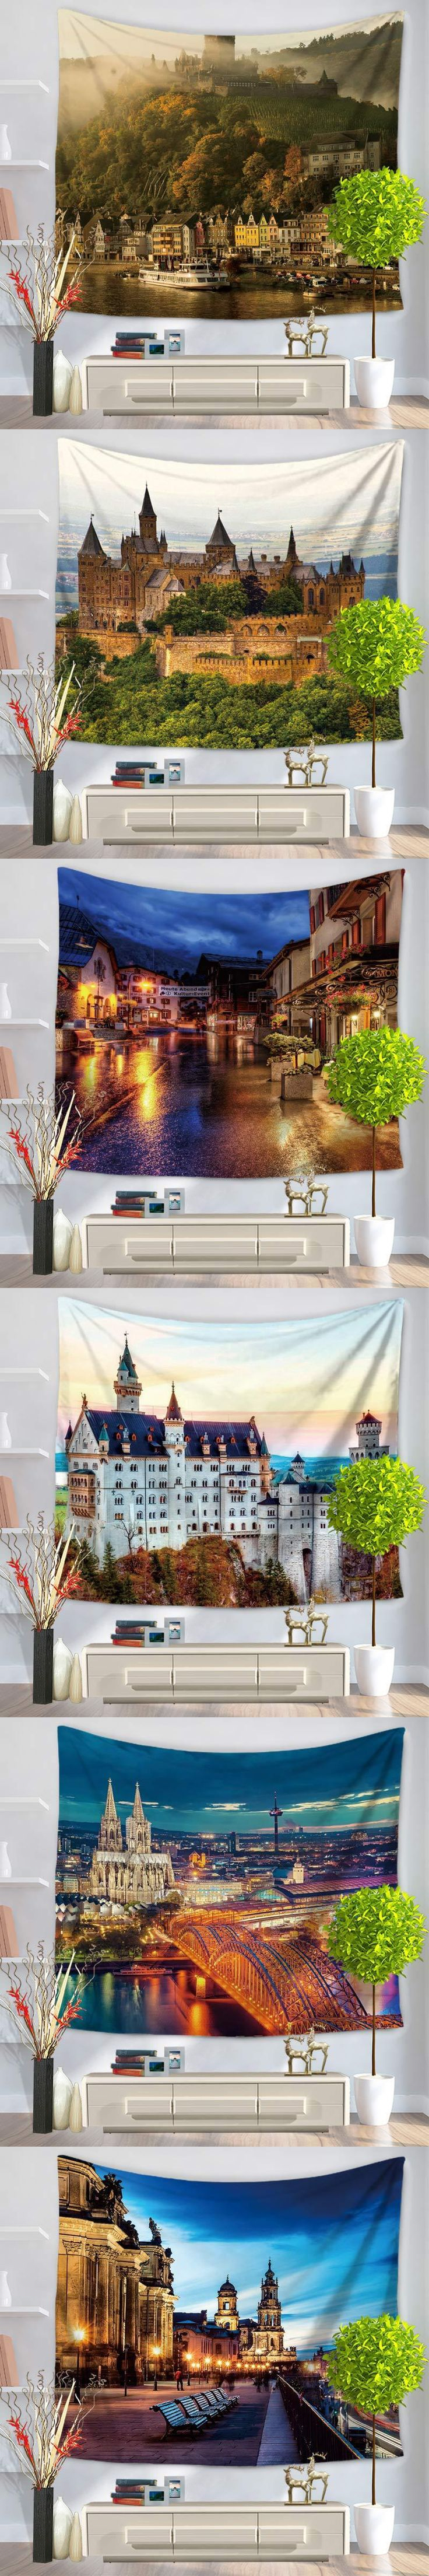 2017 wholesale wedding party gift dusk Bustling city wall hanging tapestry 130X150cm beach carpet Yoga mat picnic mat